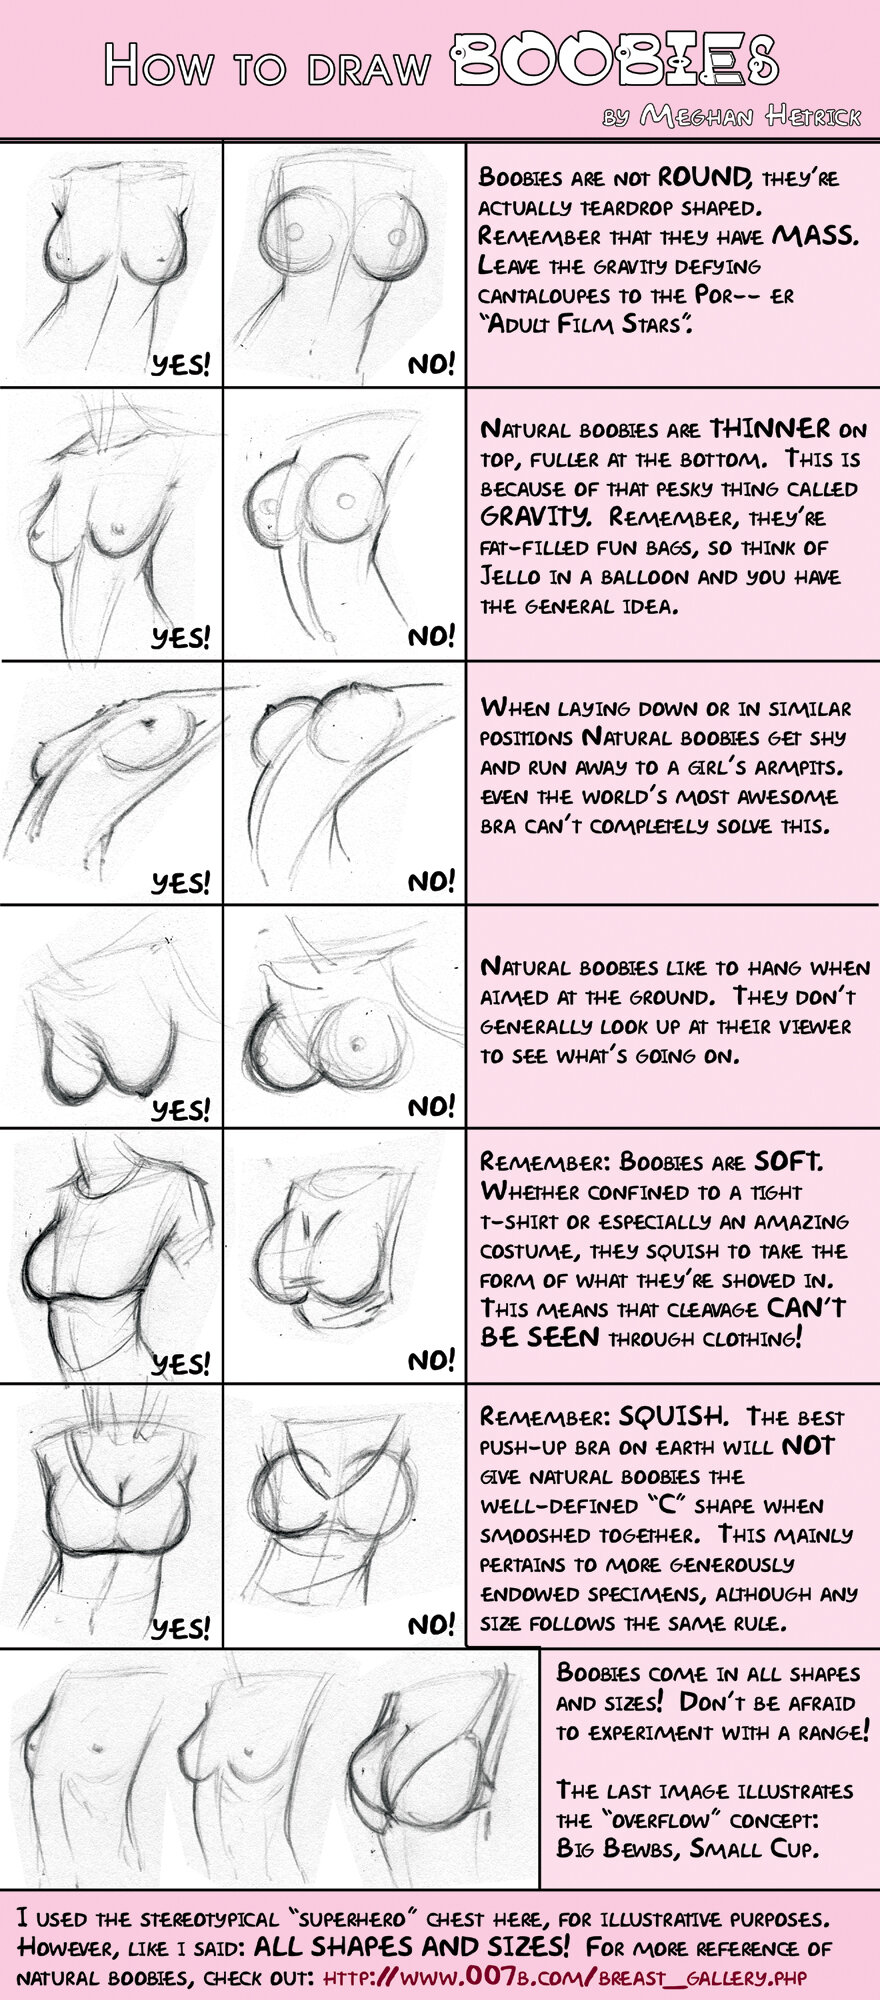 Got an email asking where my 'How to Draw Boobies' tutorial was on my site; it's up there now, as well as here #boobs http://t.co/b9ds59BLQ0